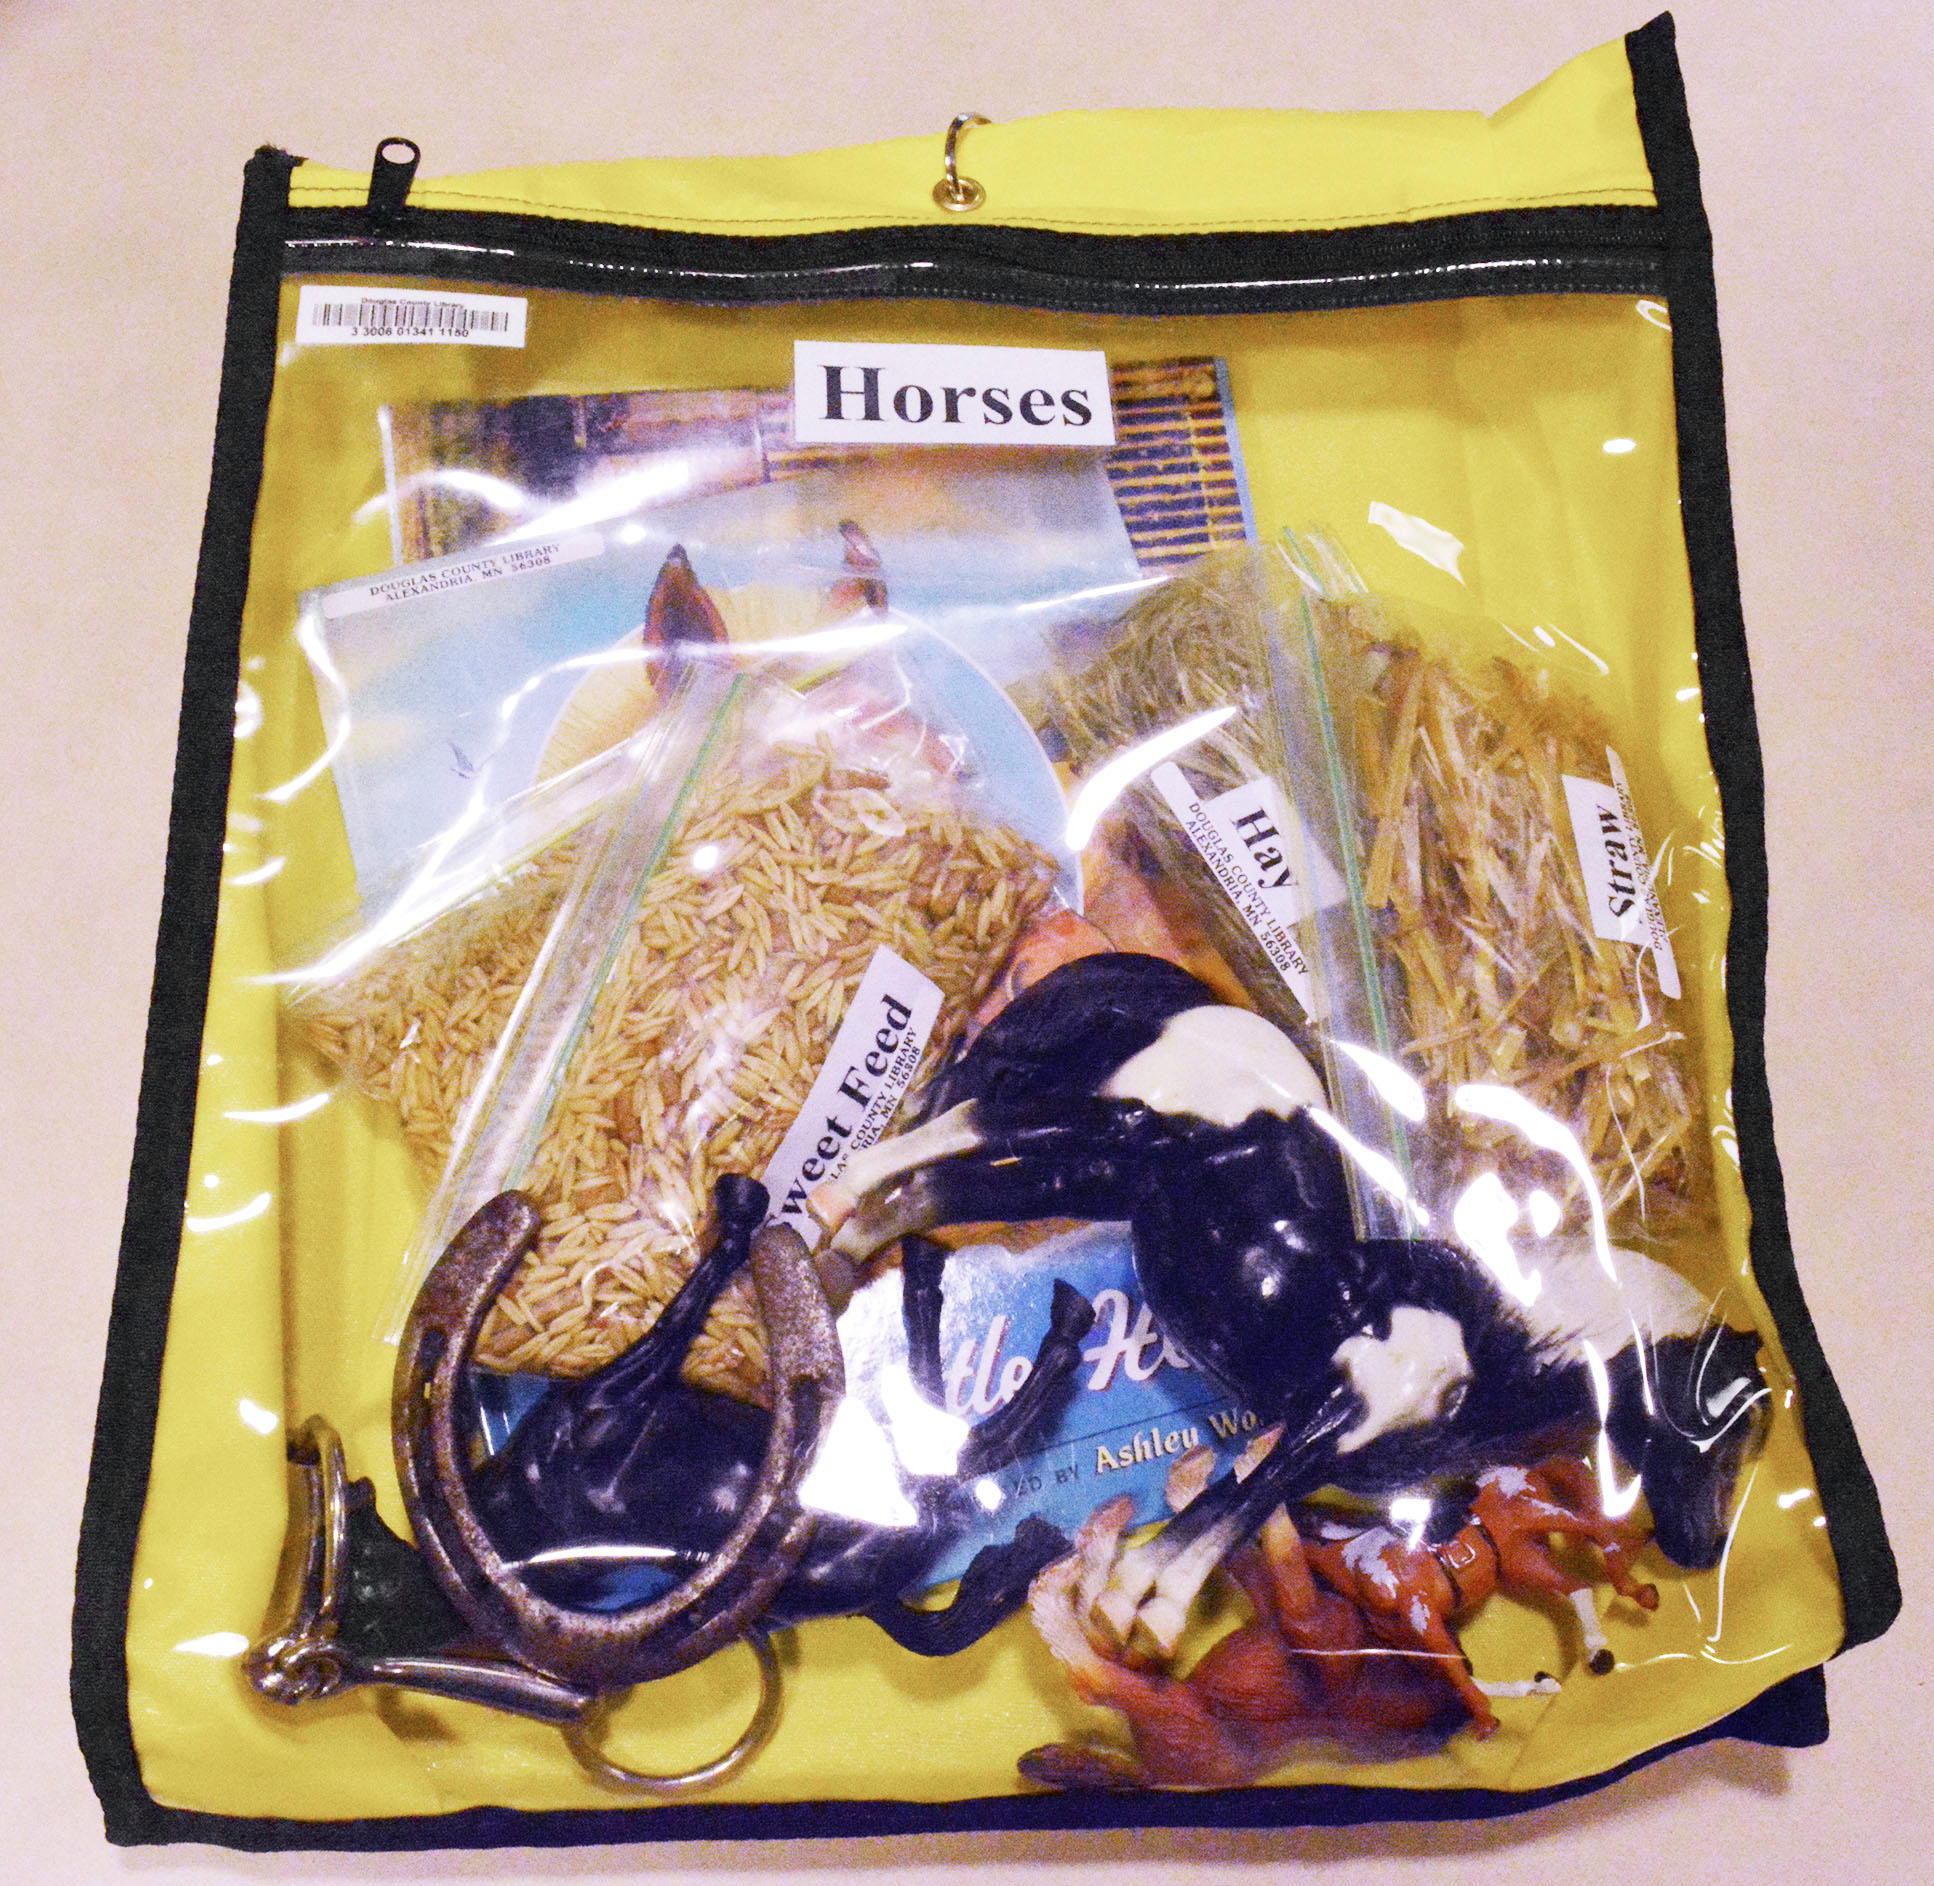 A memory kit that contains objects related to horses is one of several hoped to spark memories in people with dementia. (Ari Leuthner / Echo Press)